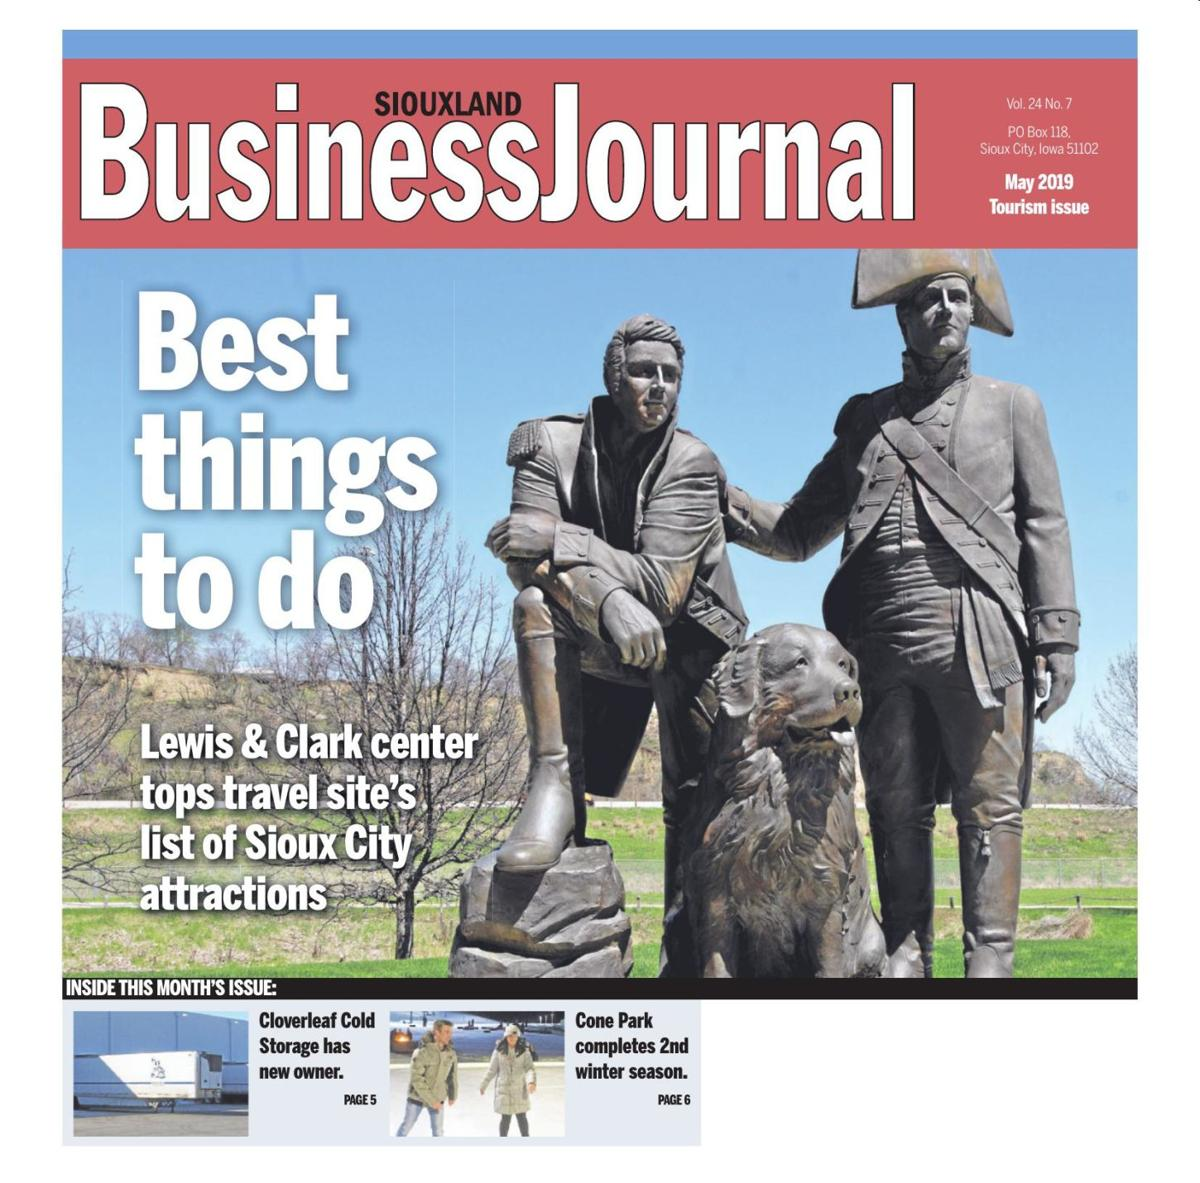 Business Journal - May 2019